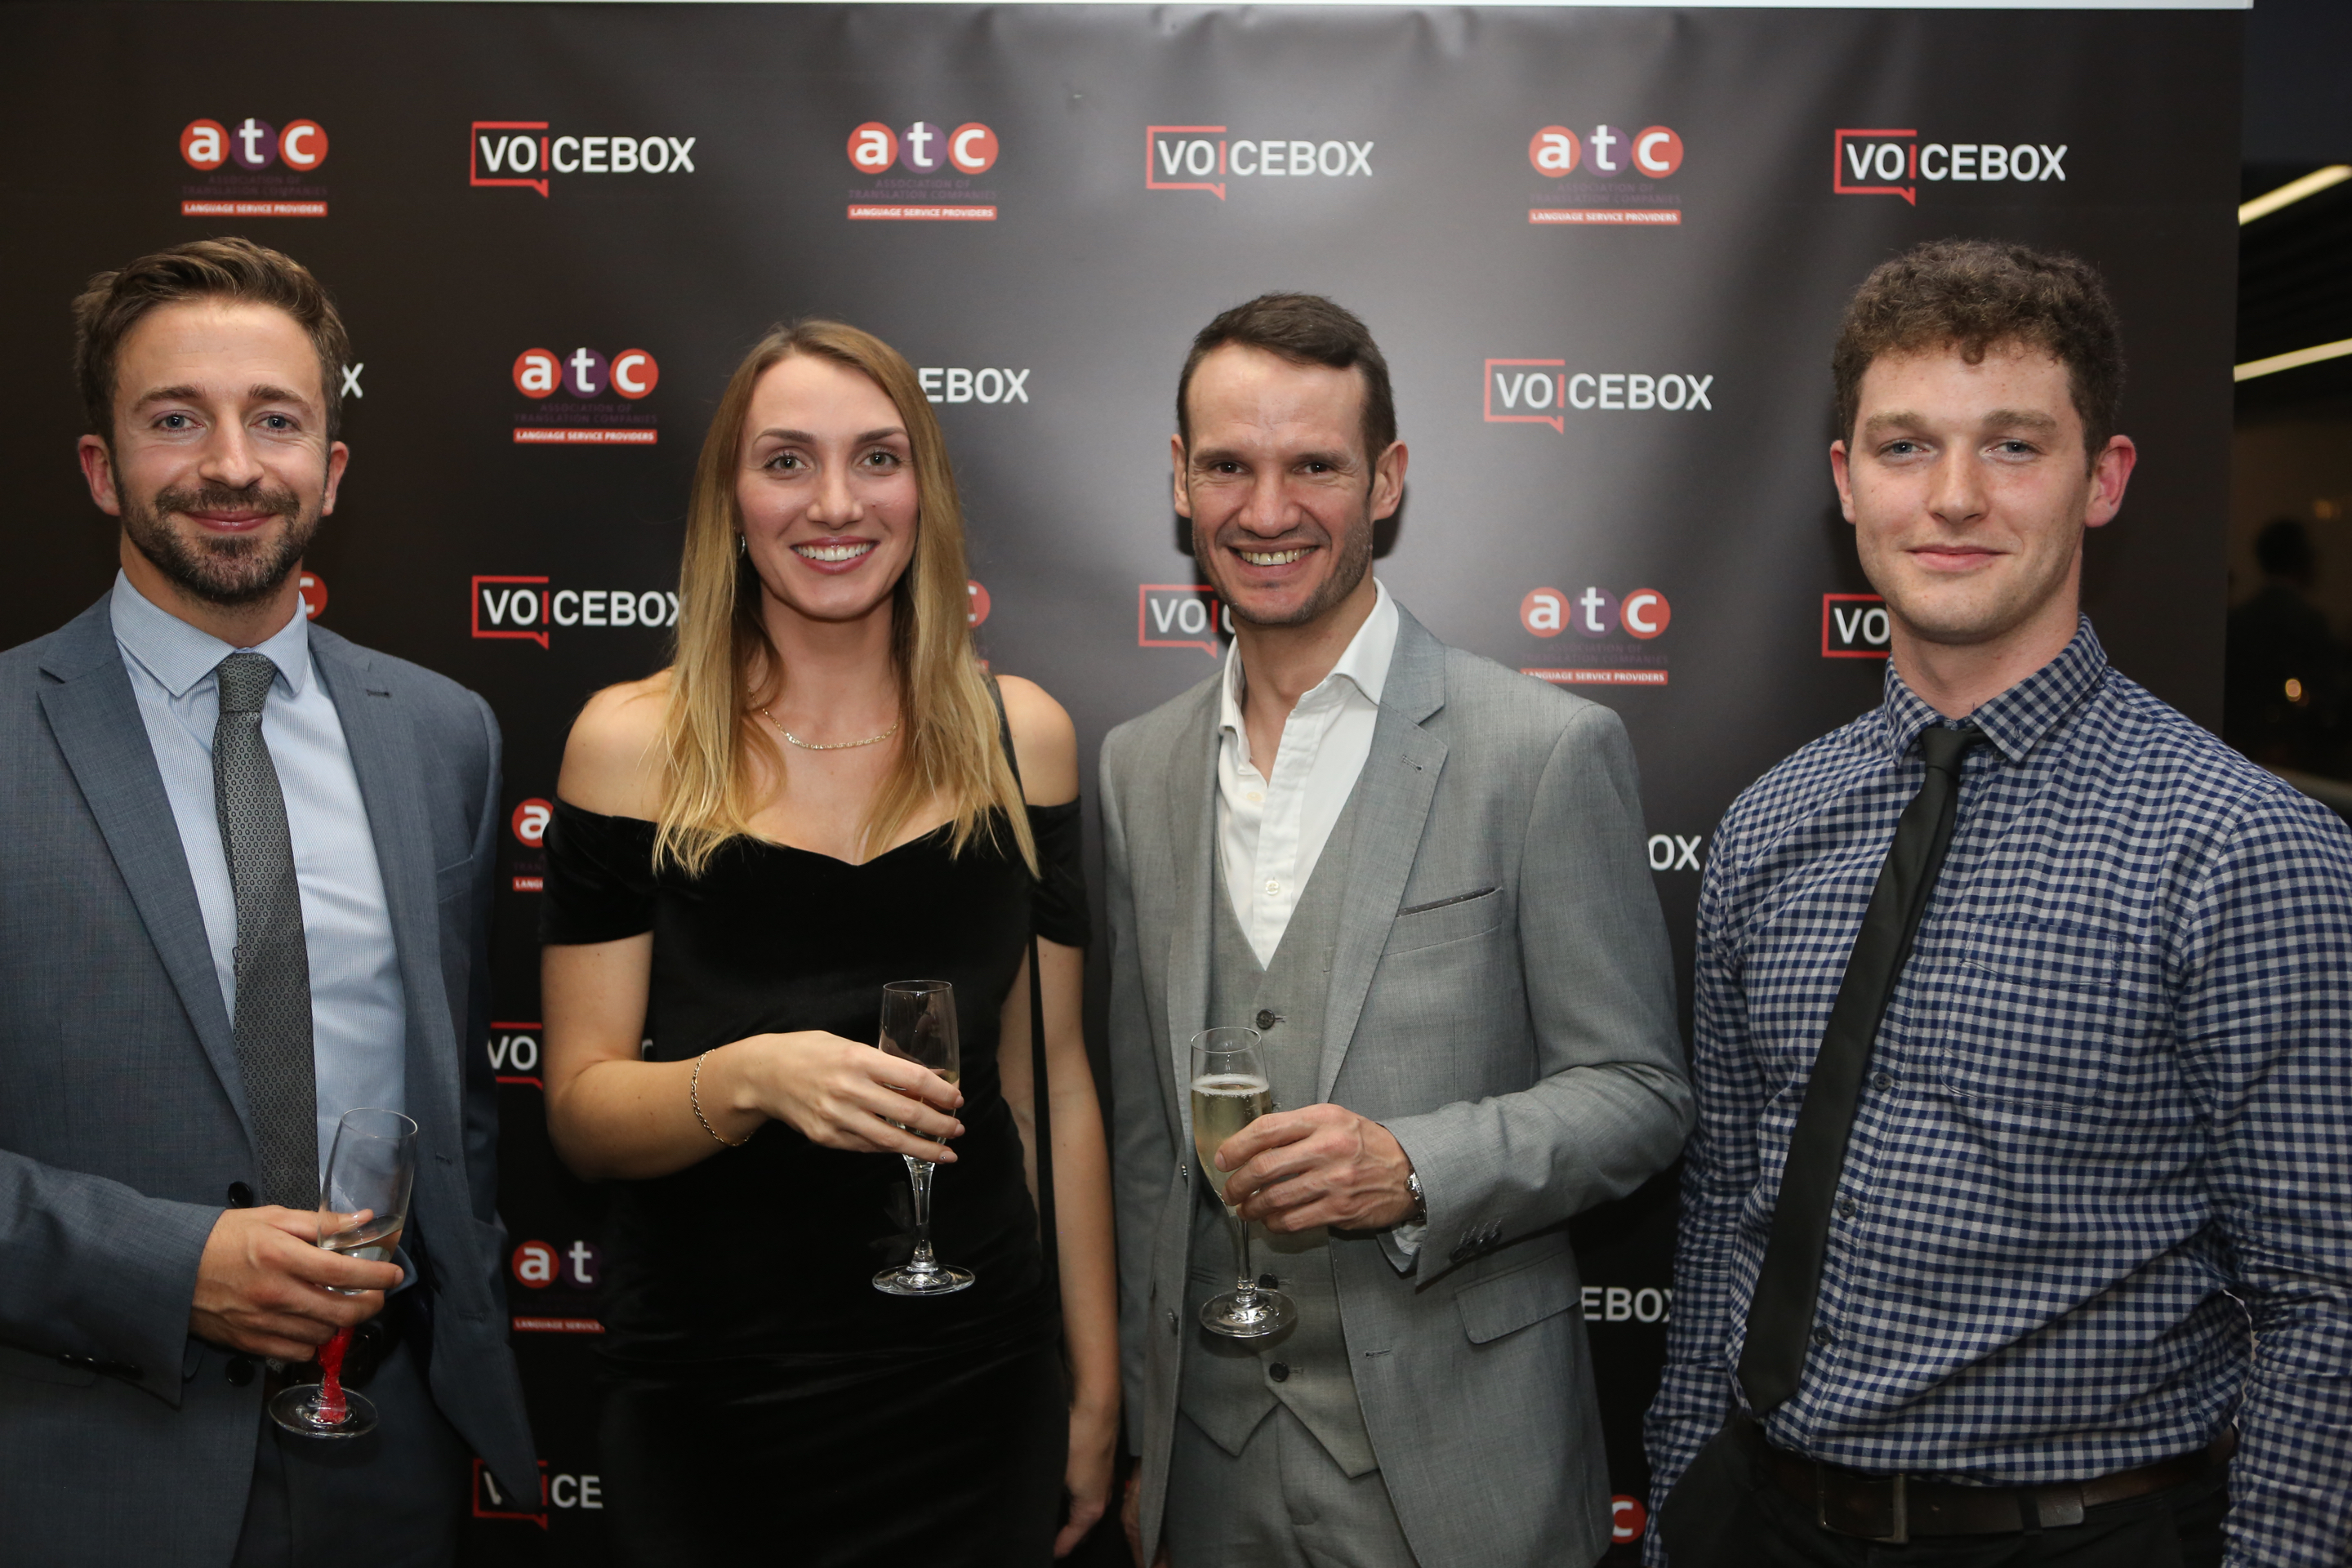 Ben, Magda, Roy and Anthony at the ATC Summit in London